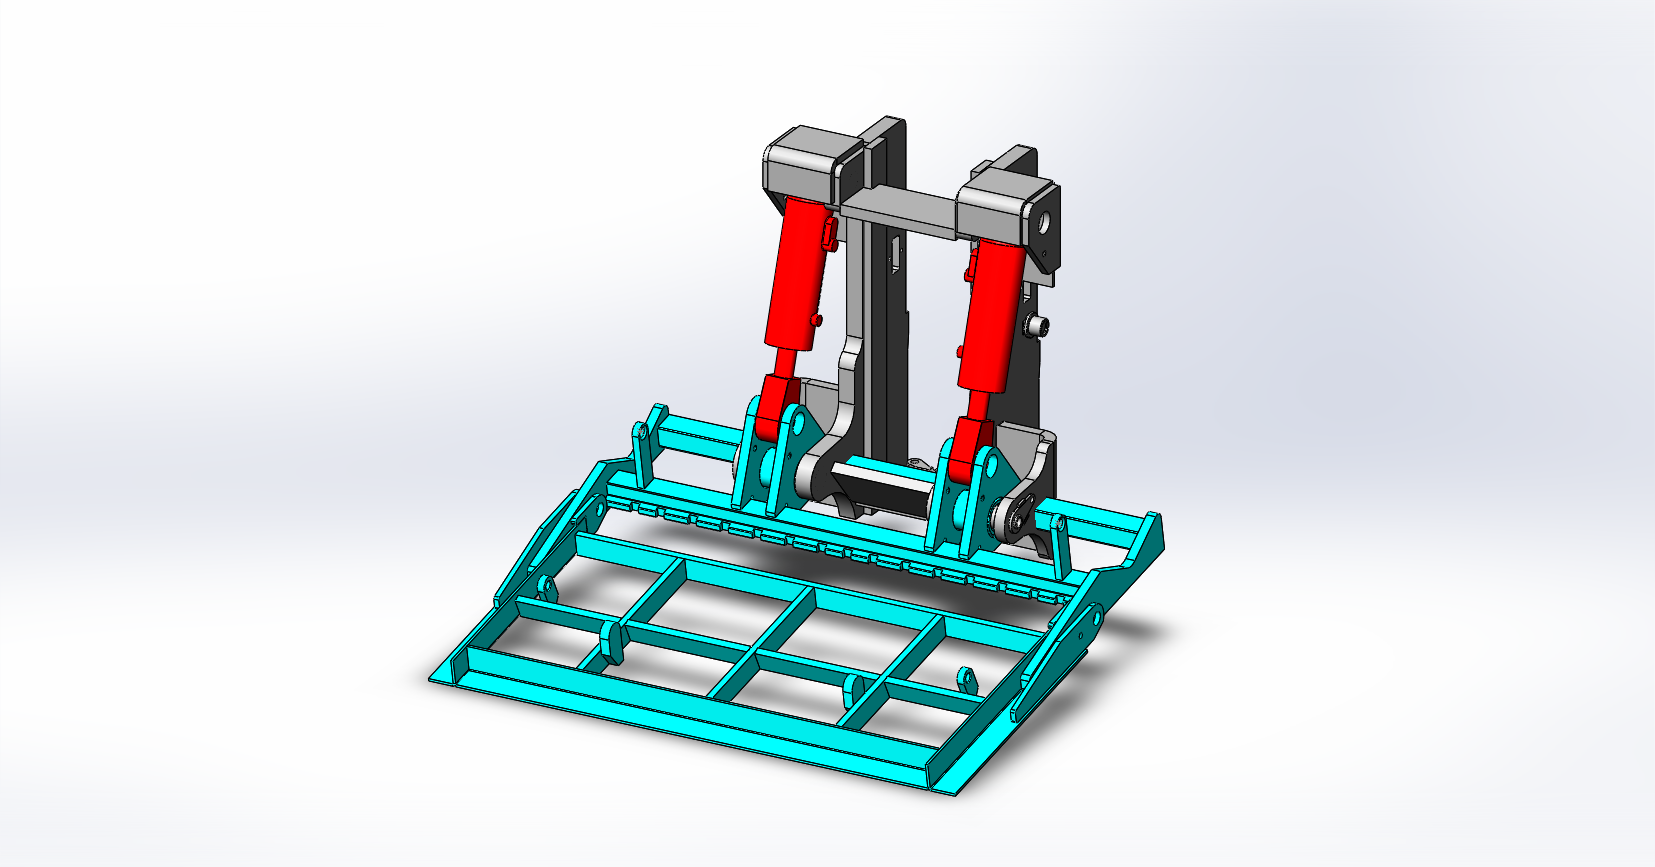 Axon Forklift: Tipping Carriage / Loading Bucket-9